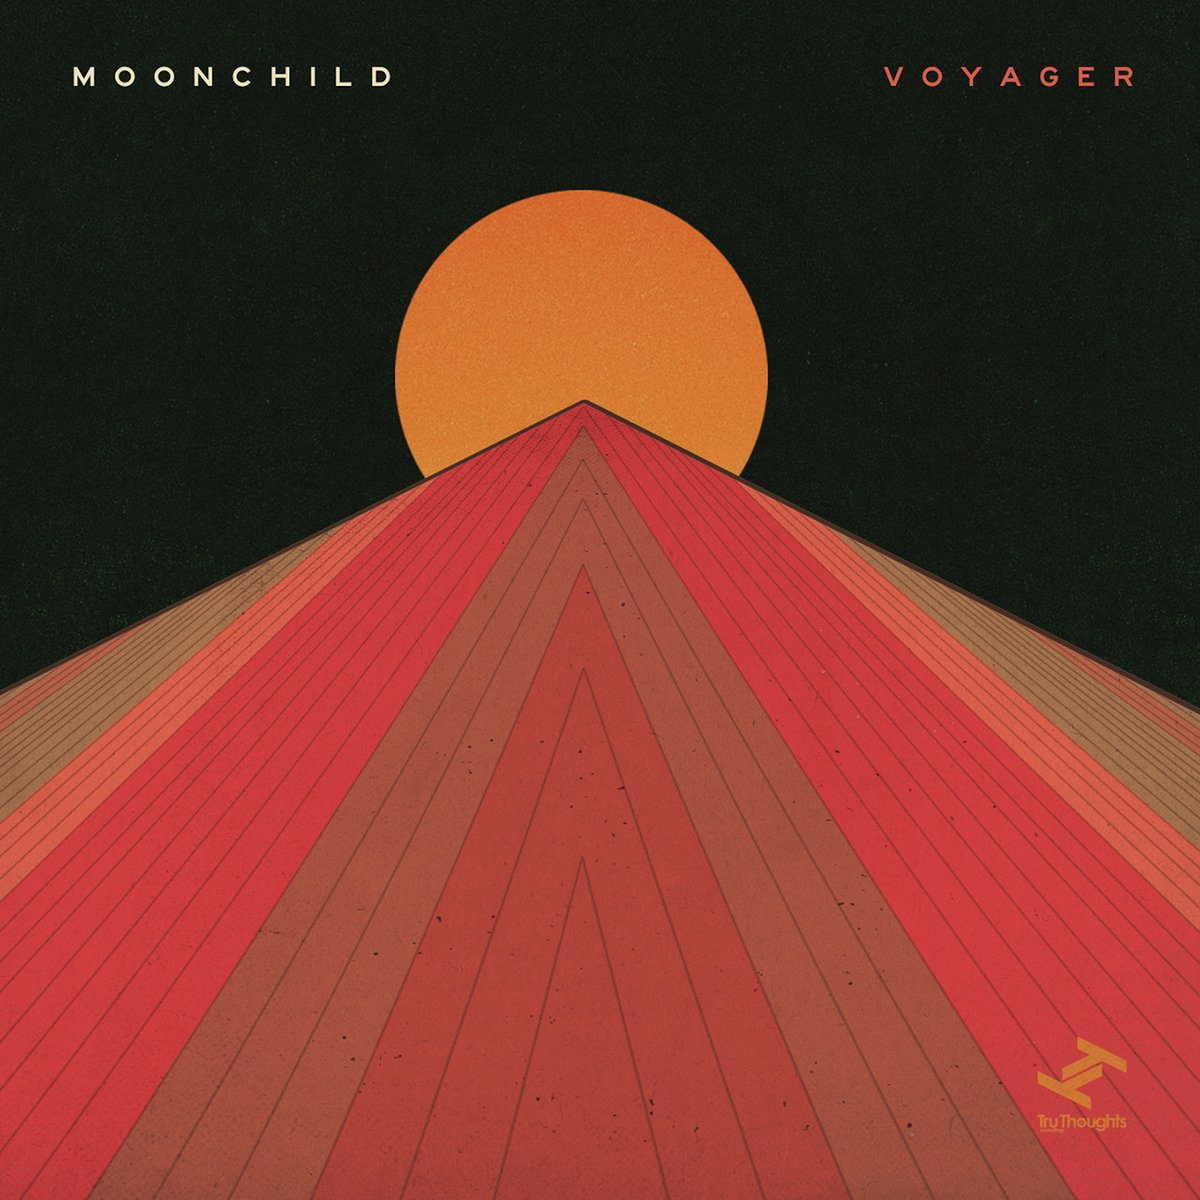 moonchild voyager